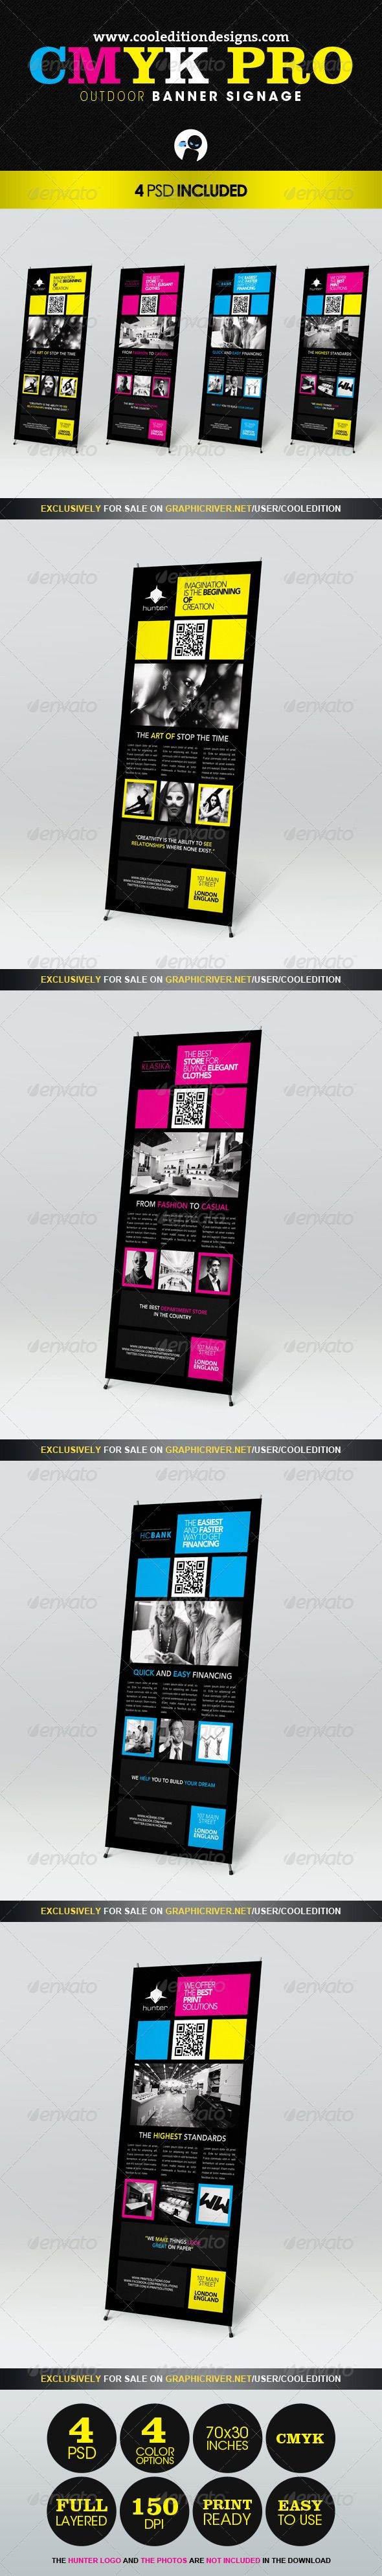 Design a banner to print - Cmyk Pro Outdoor Banner Signage